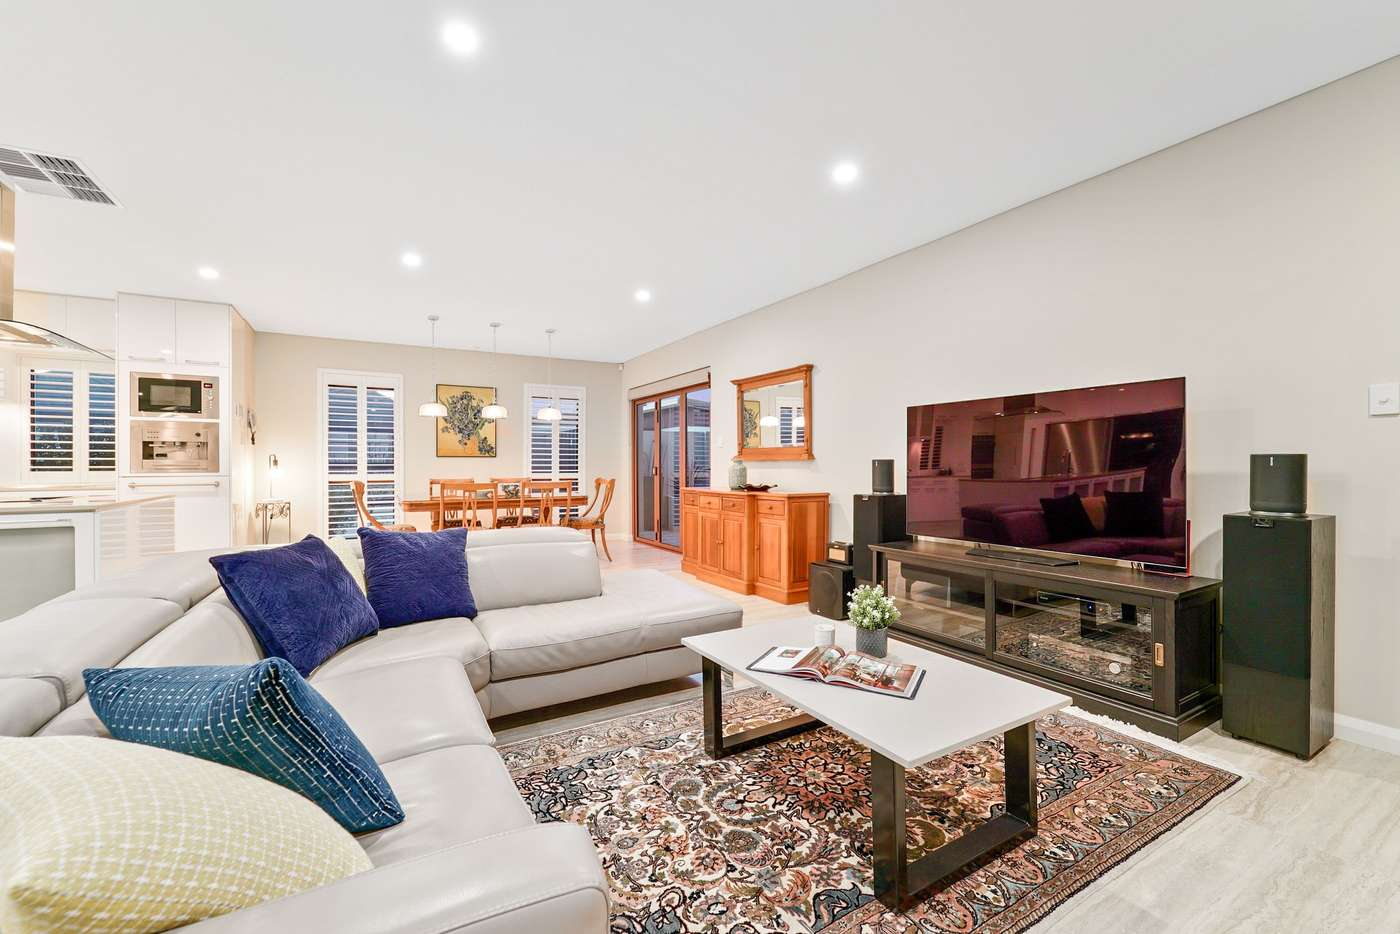 Fifth view of Homely house listing, 16 Bergamo Vista, Stirling WA 6021